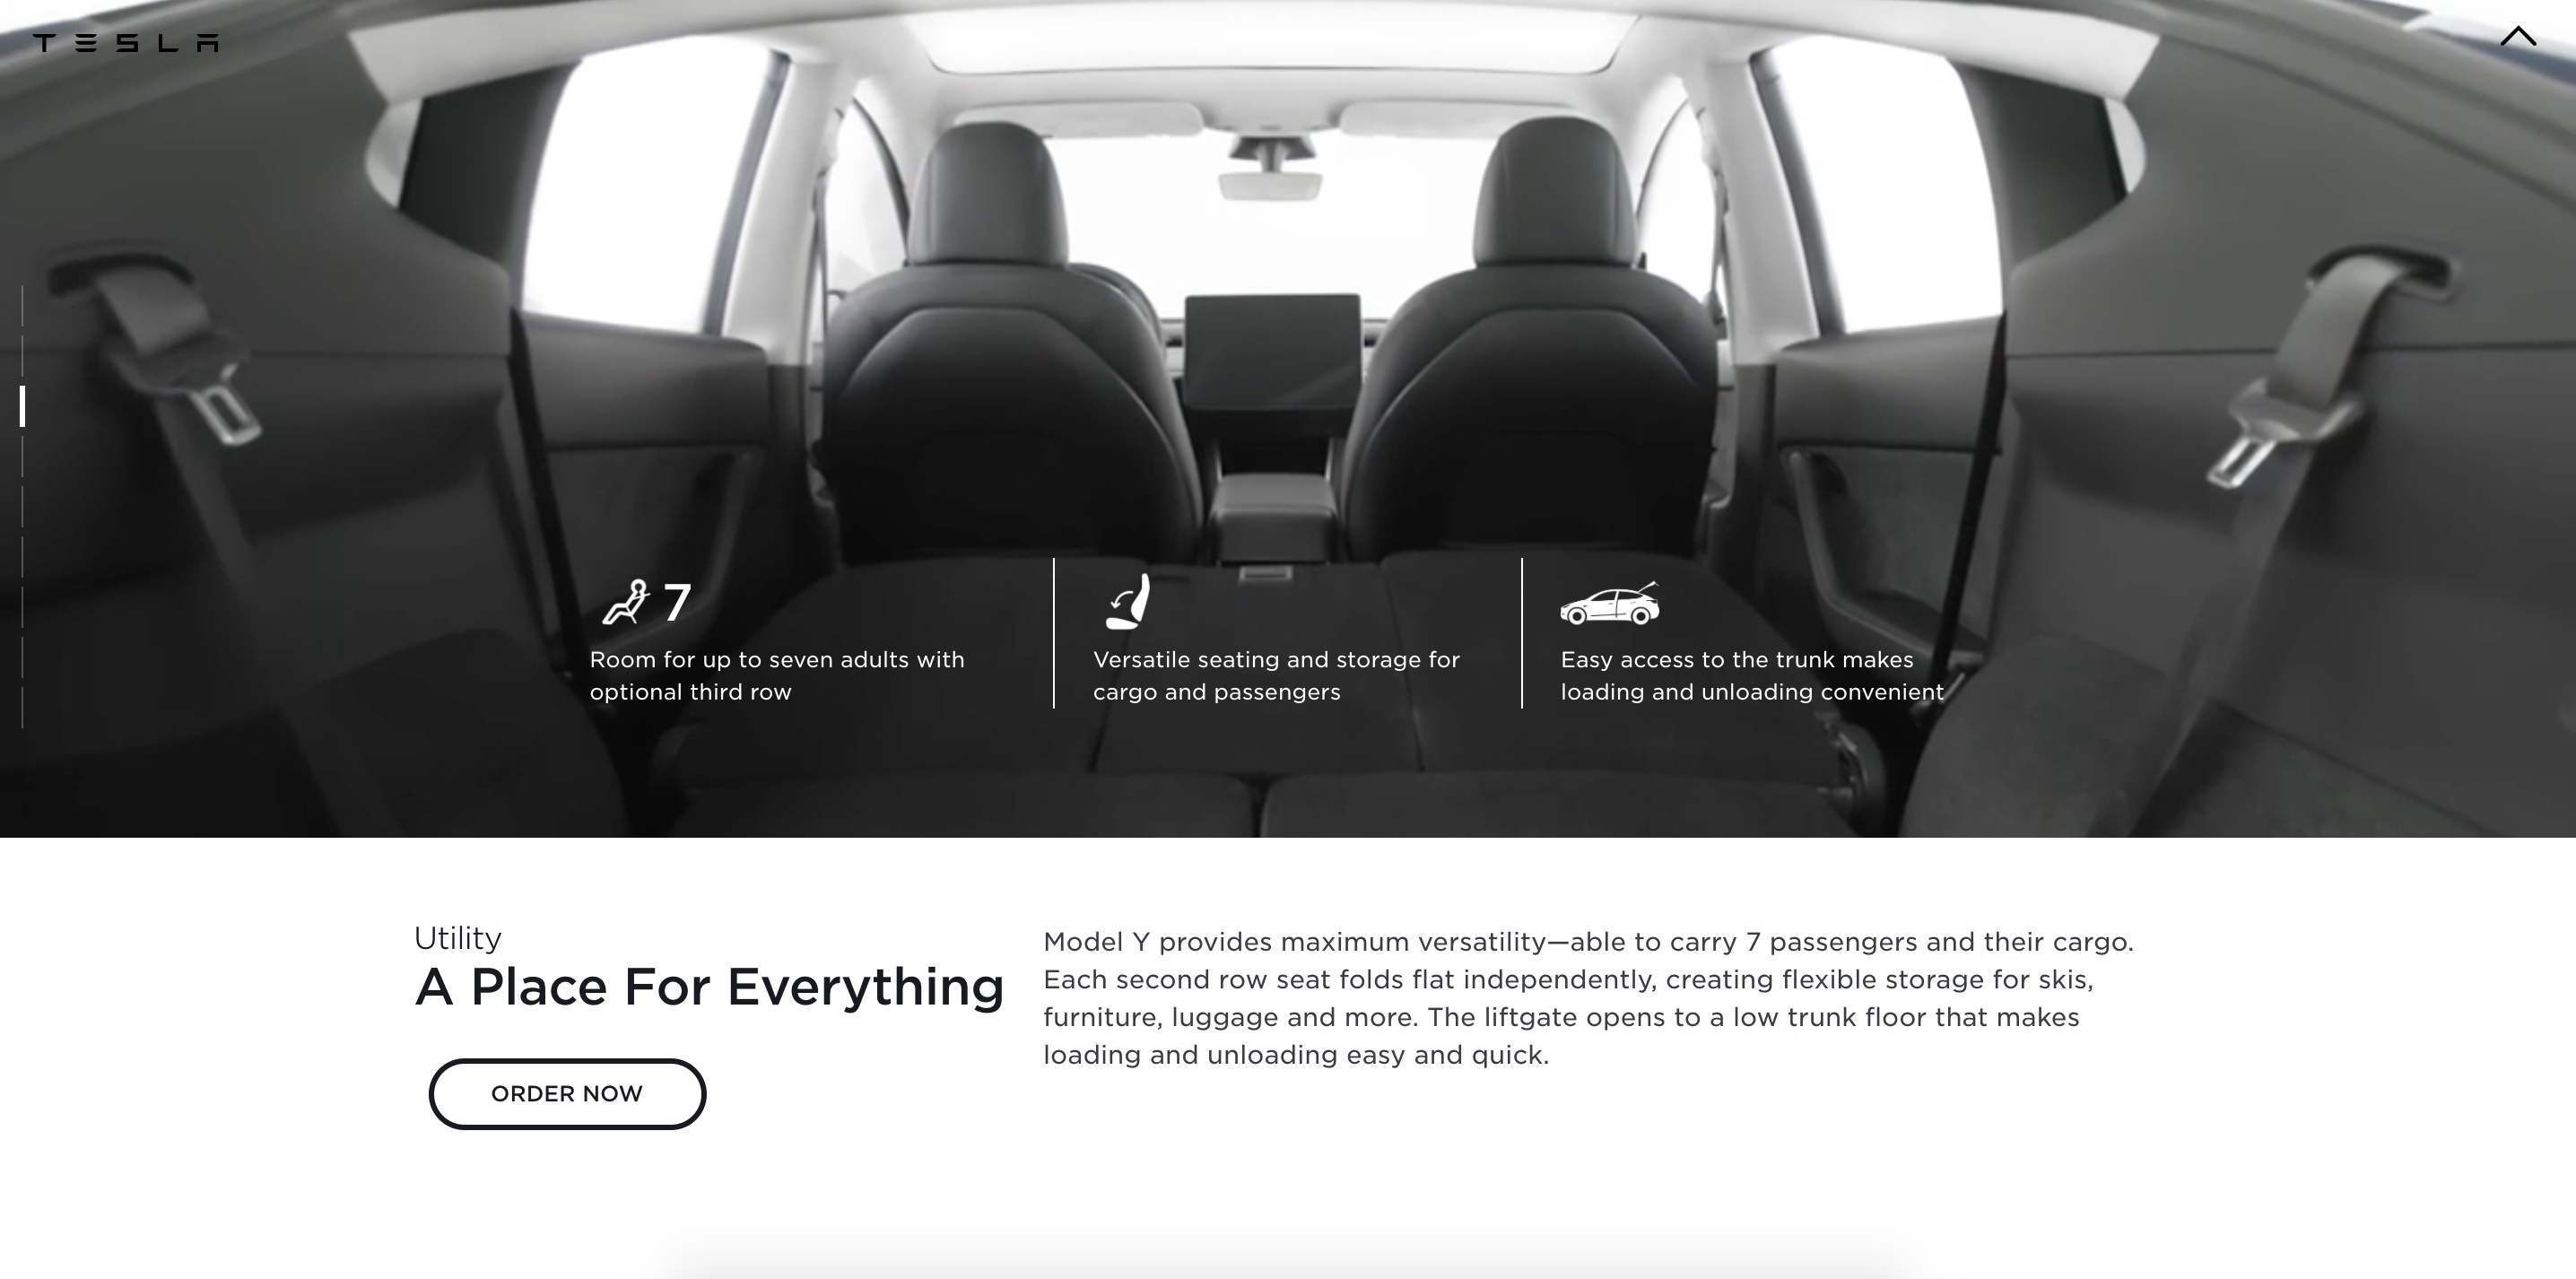 Tesla Model Y product page after showing third row